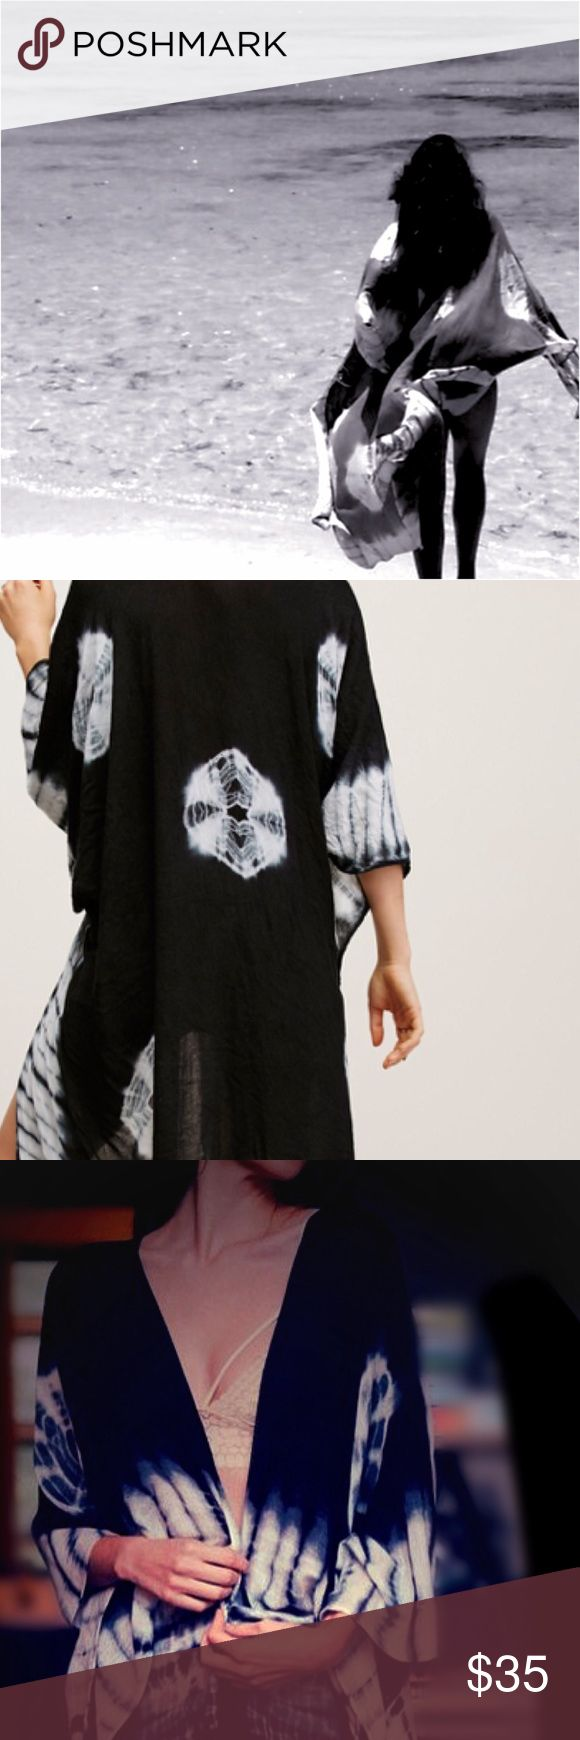 """Free People Tie Dye Kimono Free People Spellbound Tye Dye Black Kimono NEW   In a super soft fabric and tie dye pattern this maxi kimono features statement cutout detailing under the arms.   • 100% Viscose  • Dry Clean  • Import  • Measurements for size One Size  • Length: approx 57.0""""   • Sleeve Length: approx 28.0"""" Free People Other"""